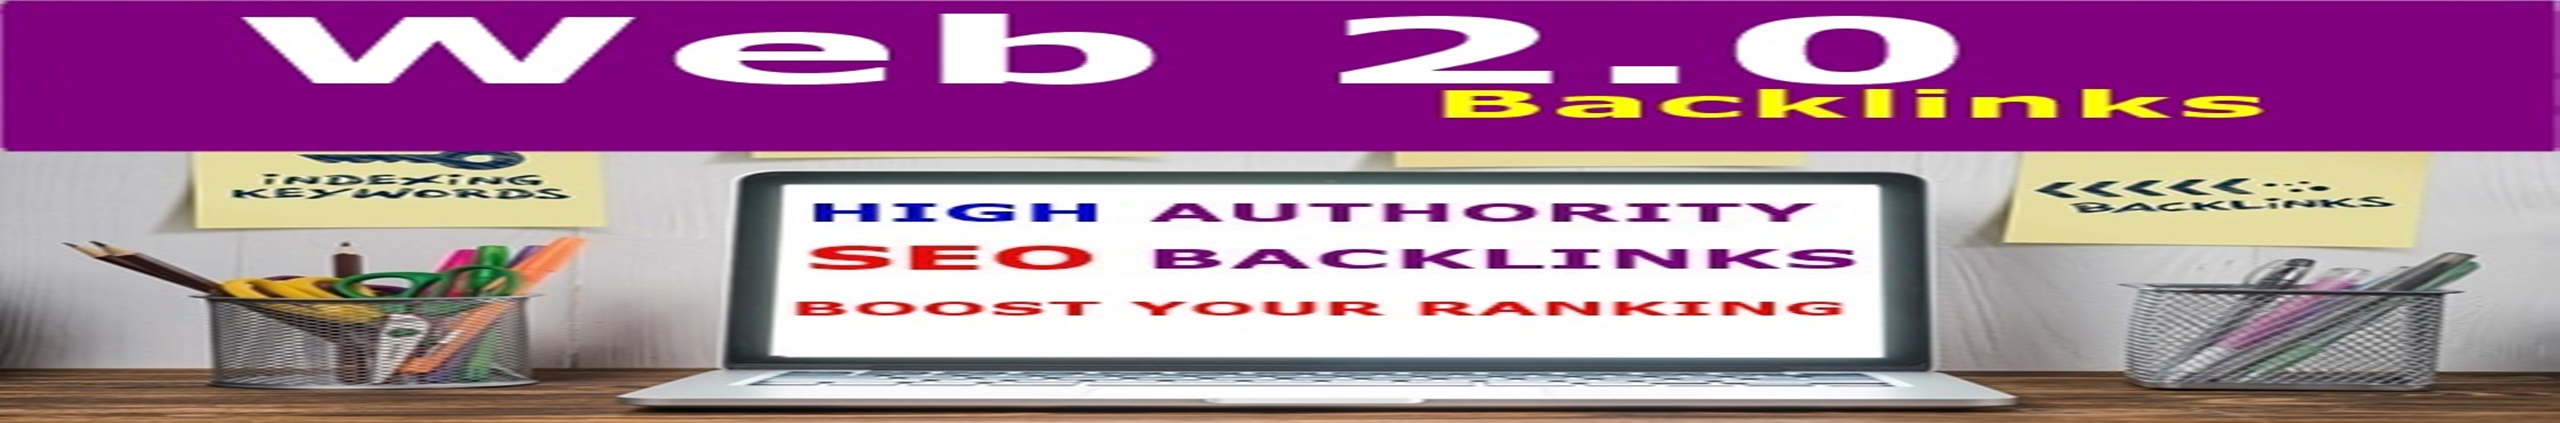 build quality web 2 0 backlinks to boost google ranking